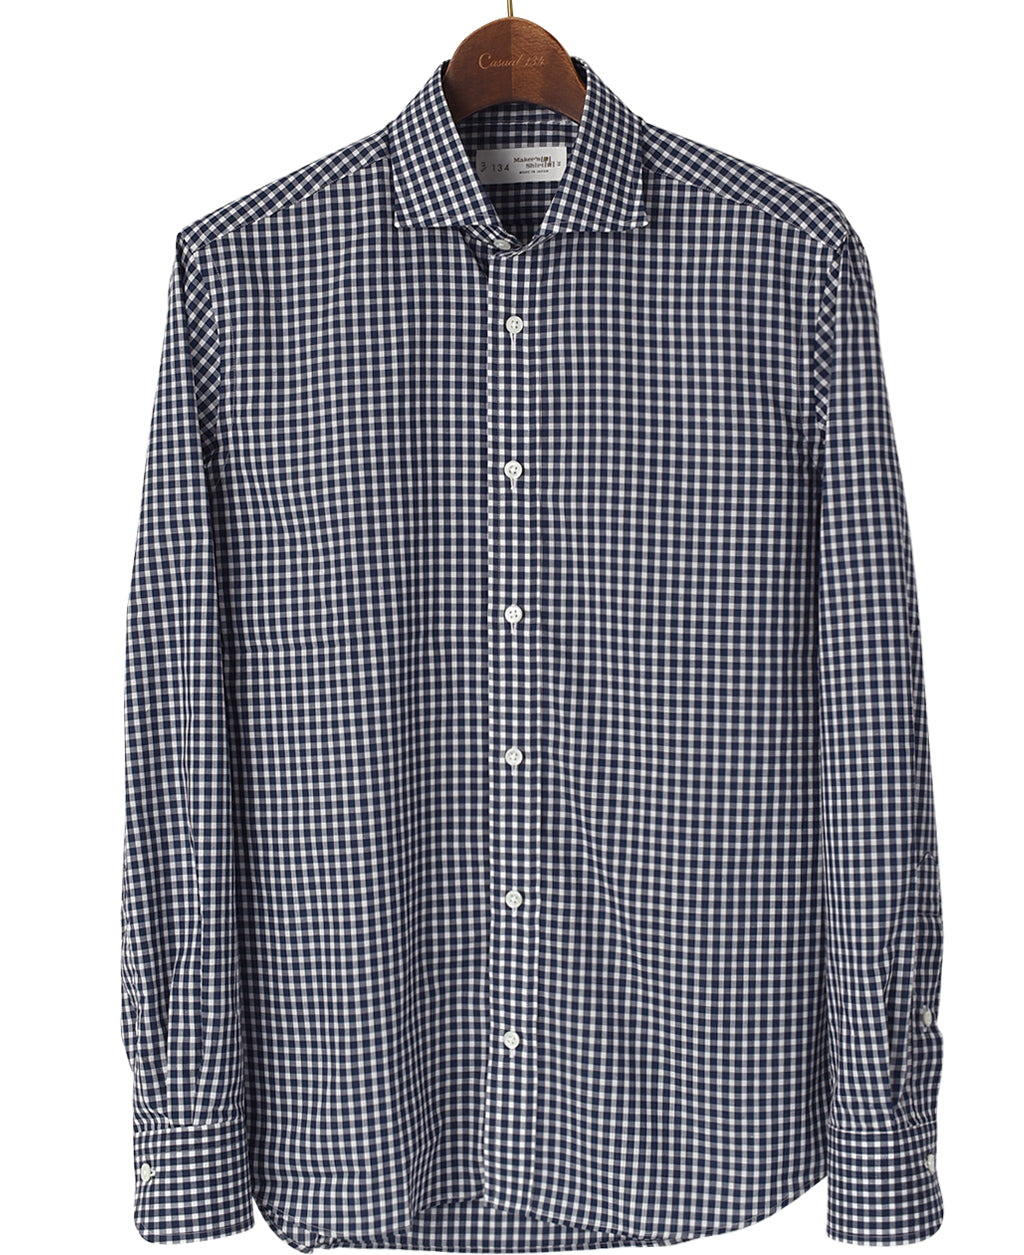 Navy check cotton shirt